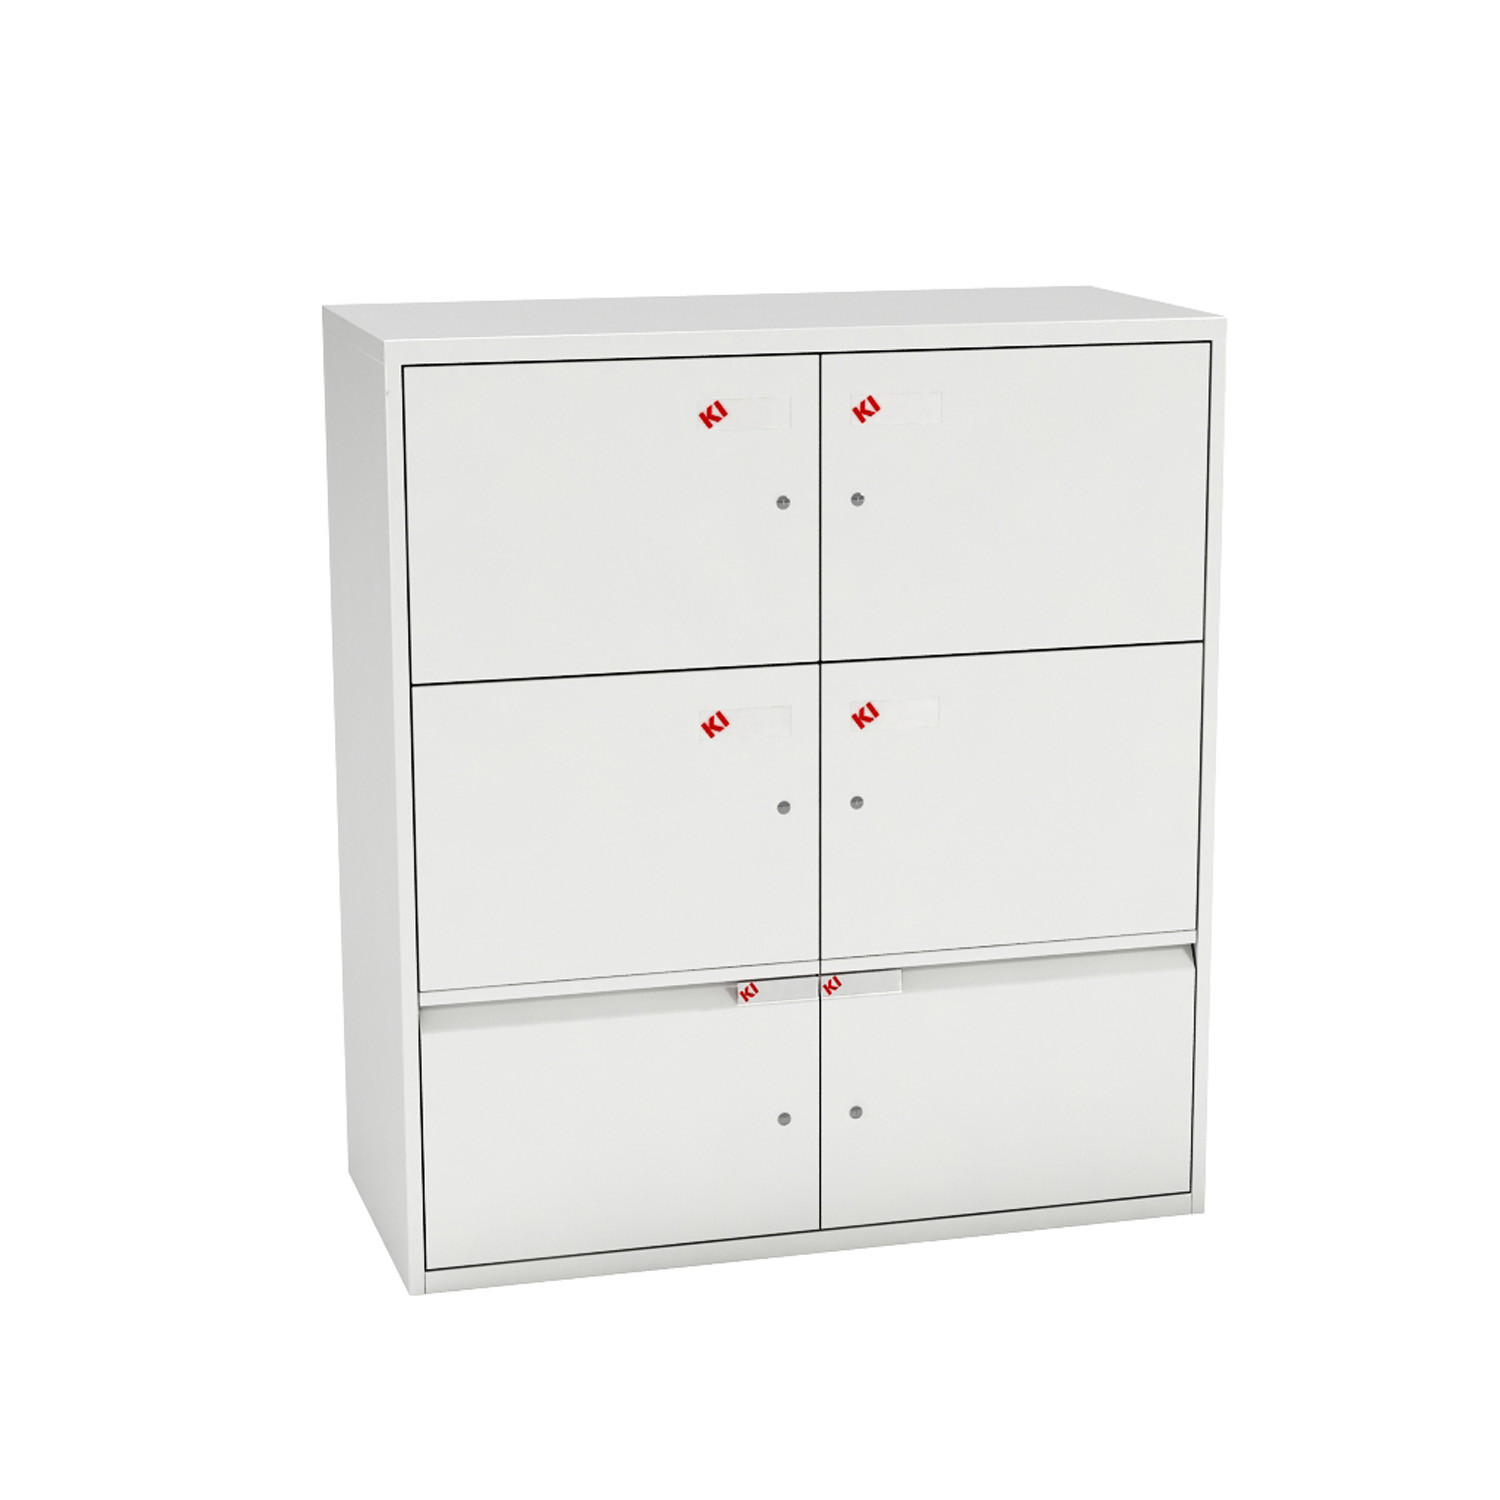 UniteSE Personal Office Storage - 6 compartments